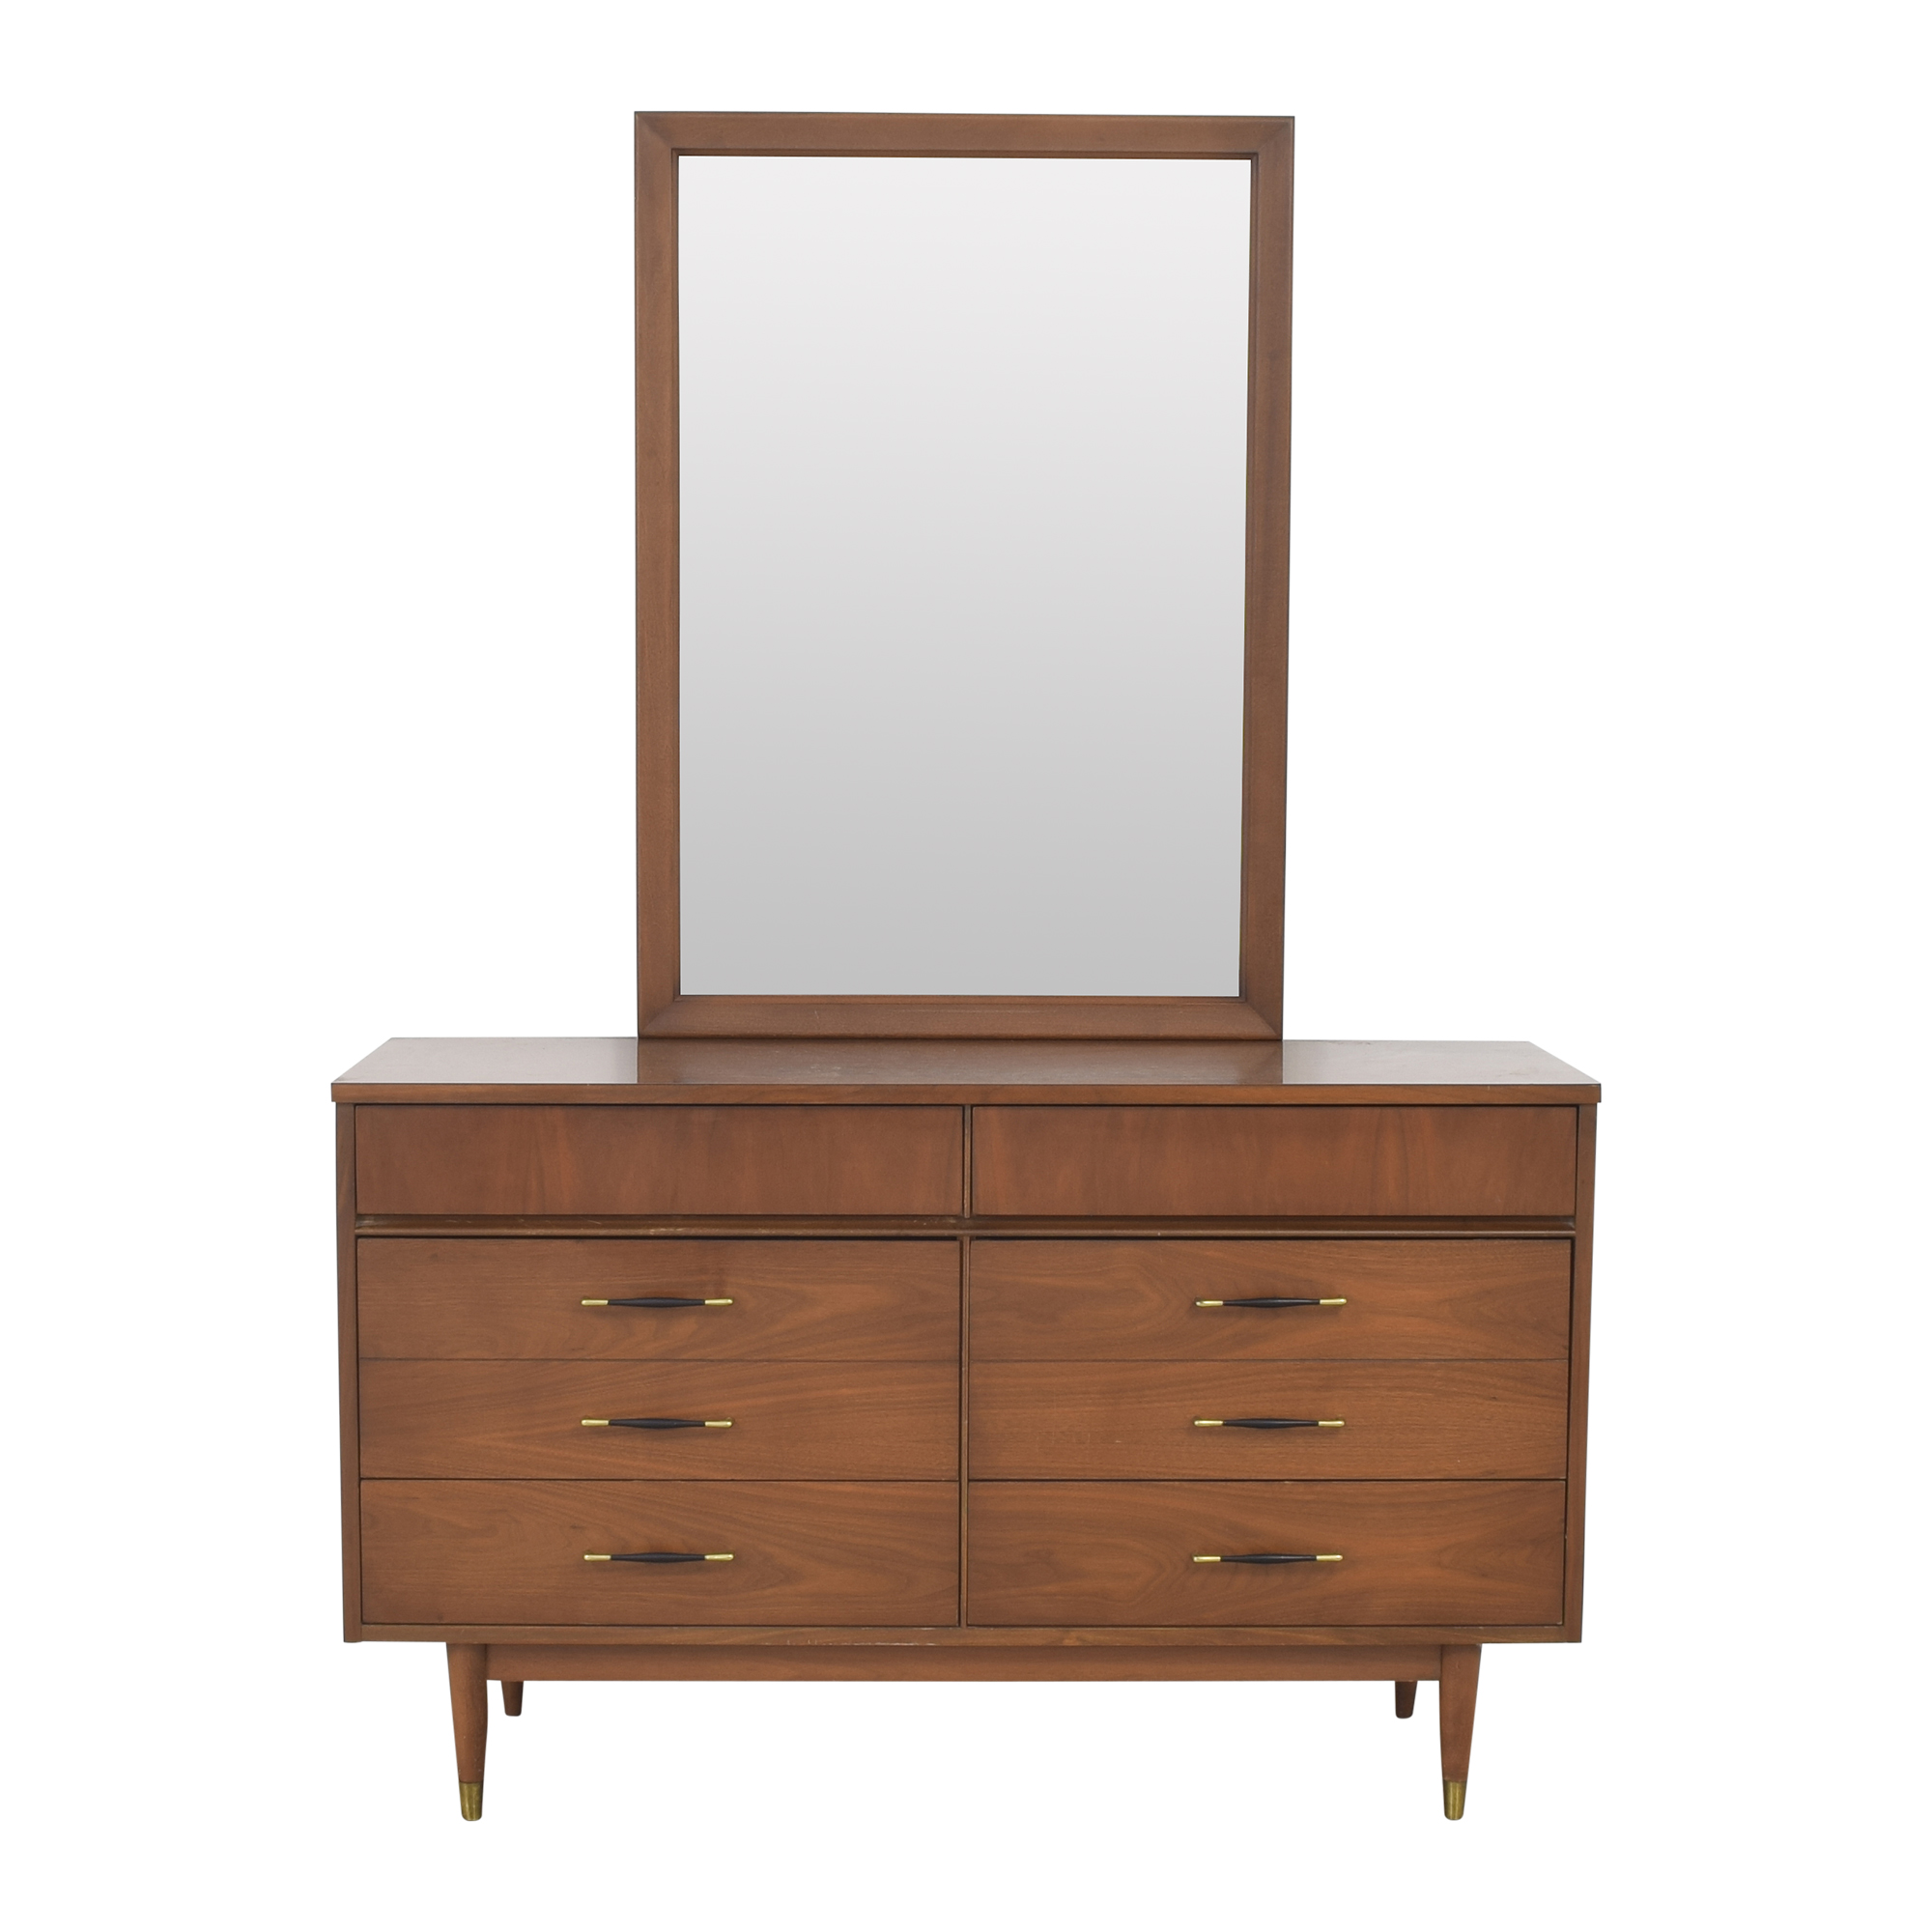 Mid Century Dresser with Mirror for sale